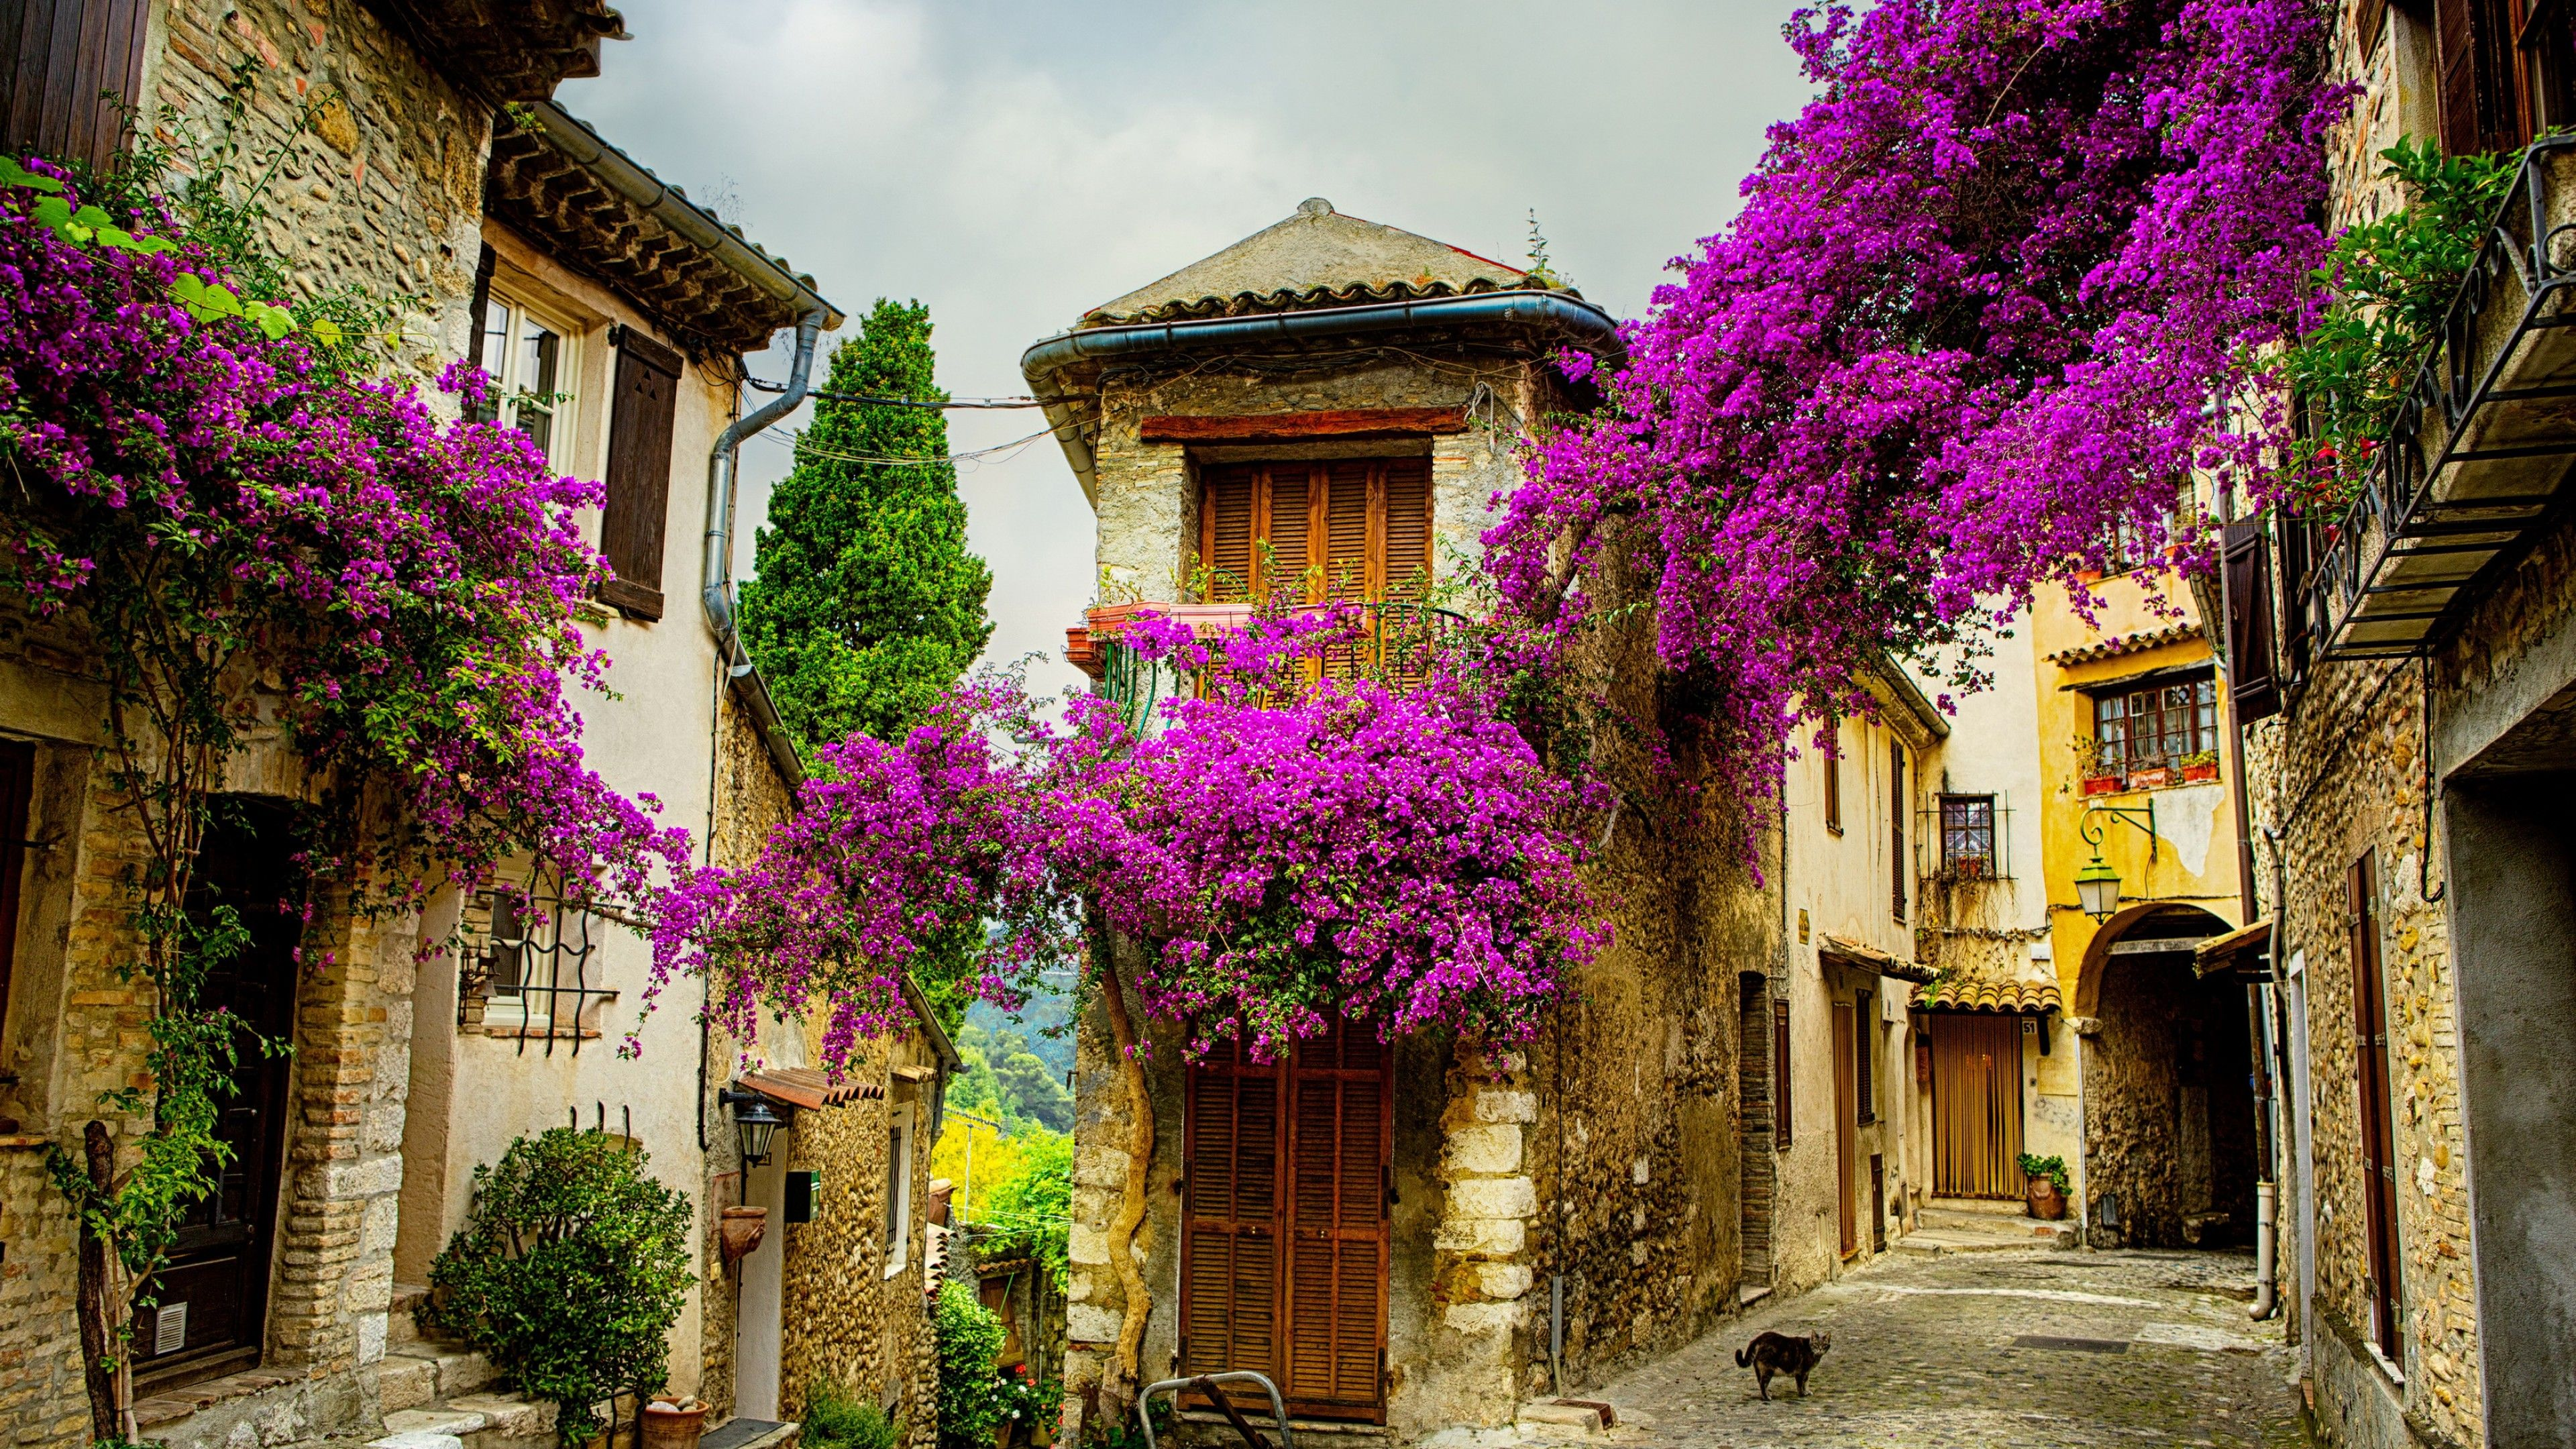 Provence France Wallpapers   Top Provence France Backgrounds 3840x2160